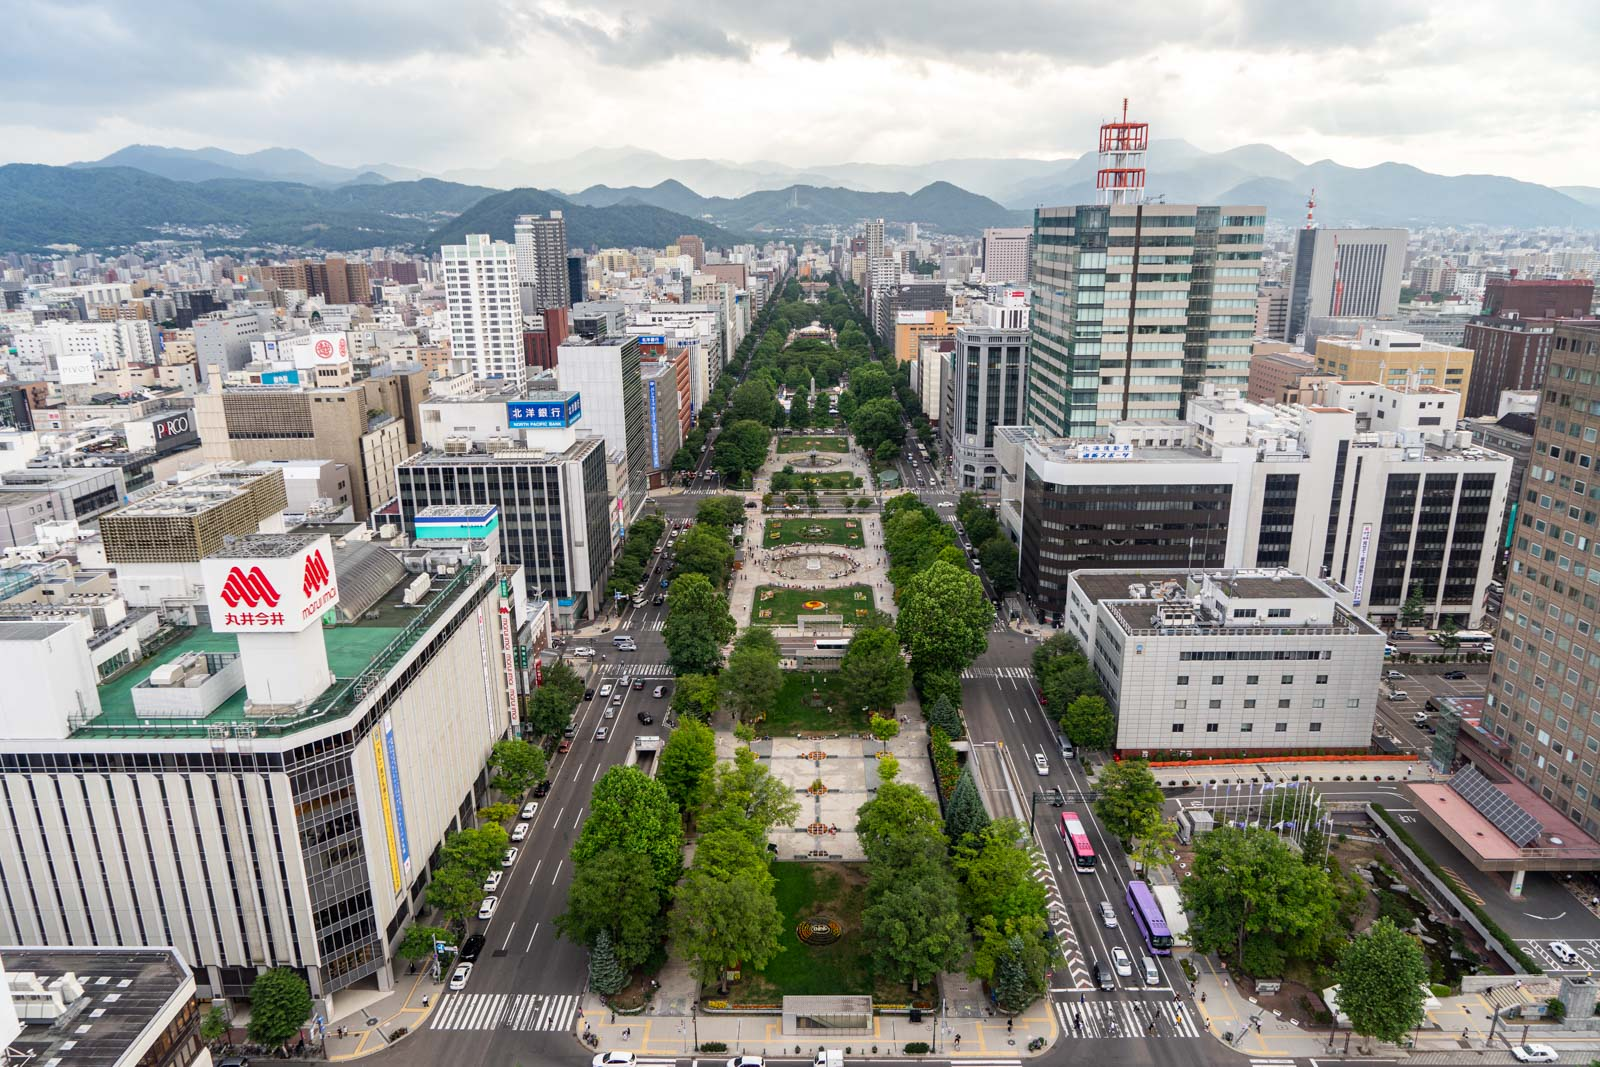 Things to do in Sapporo, Japan